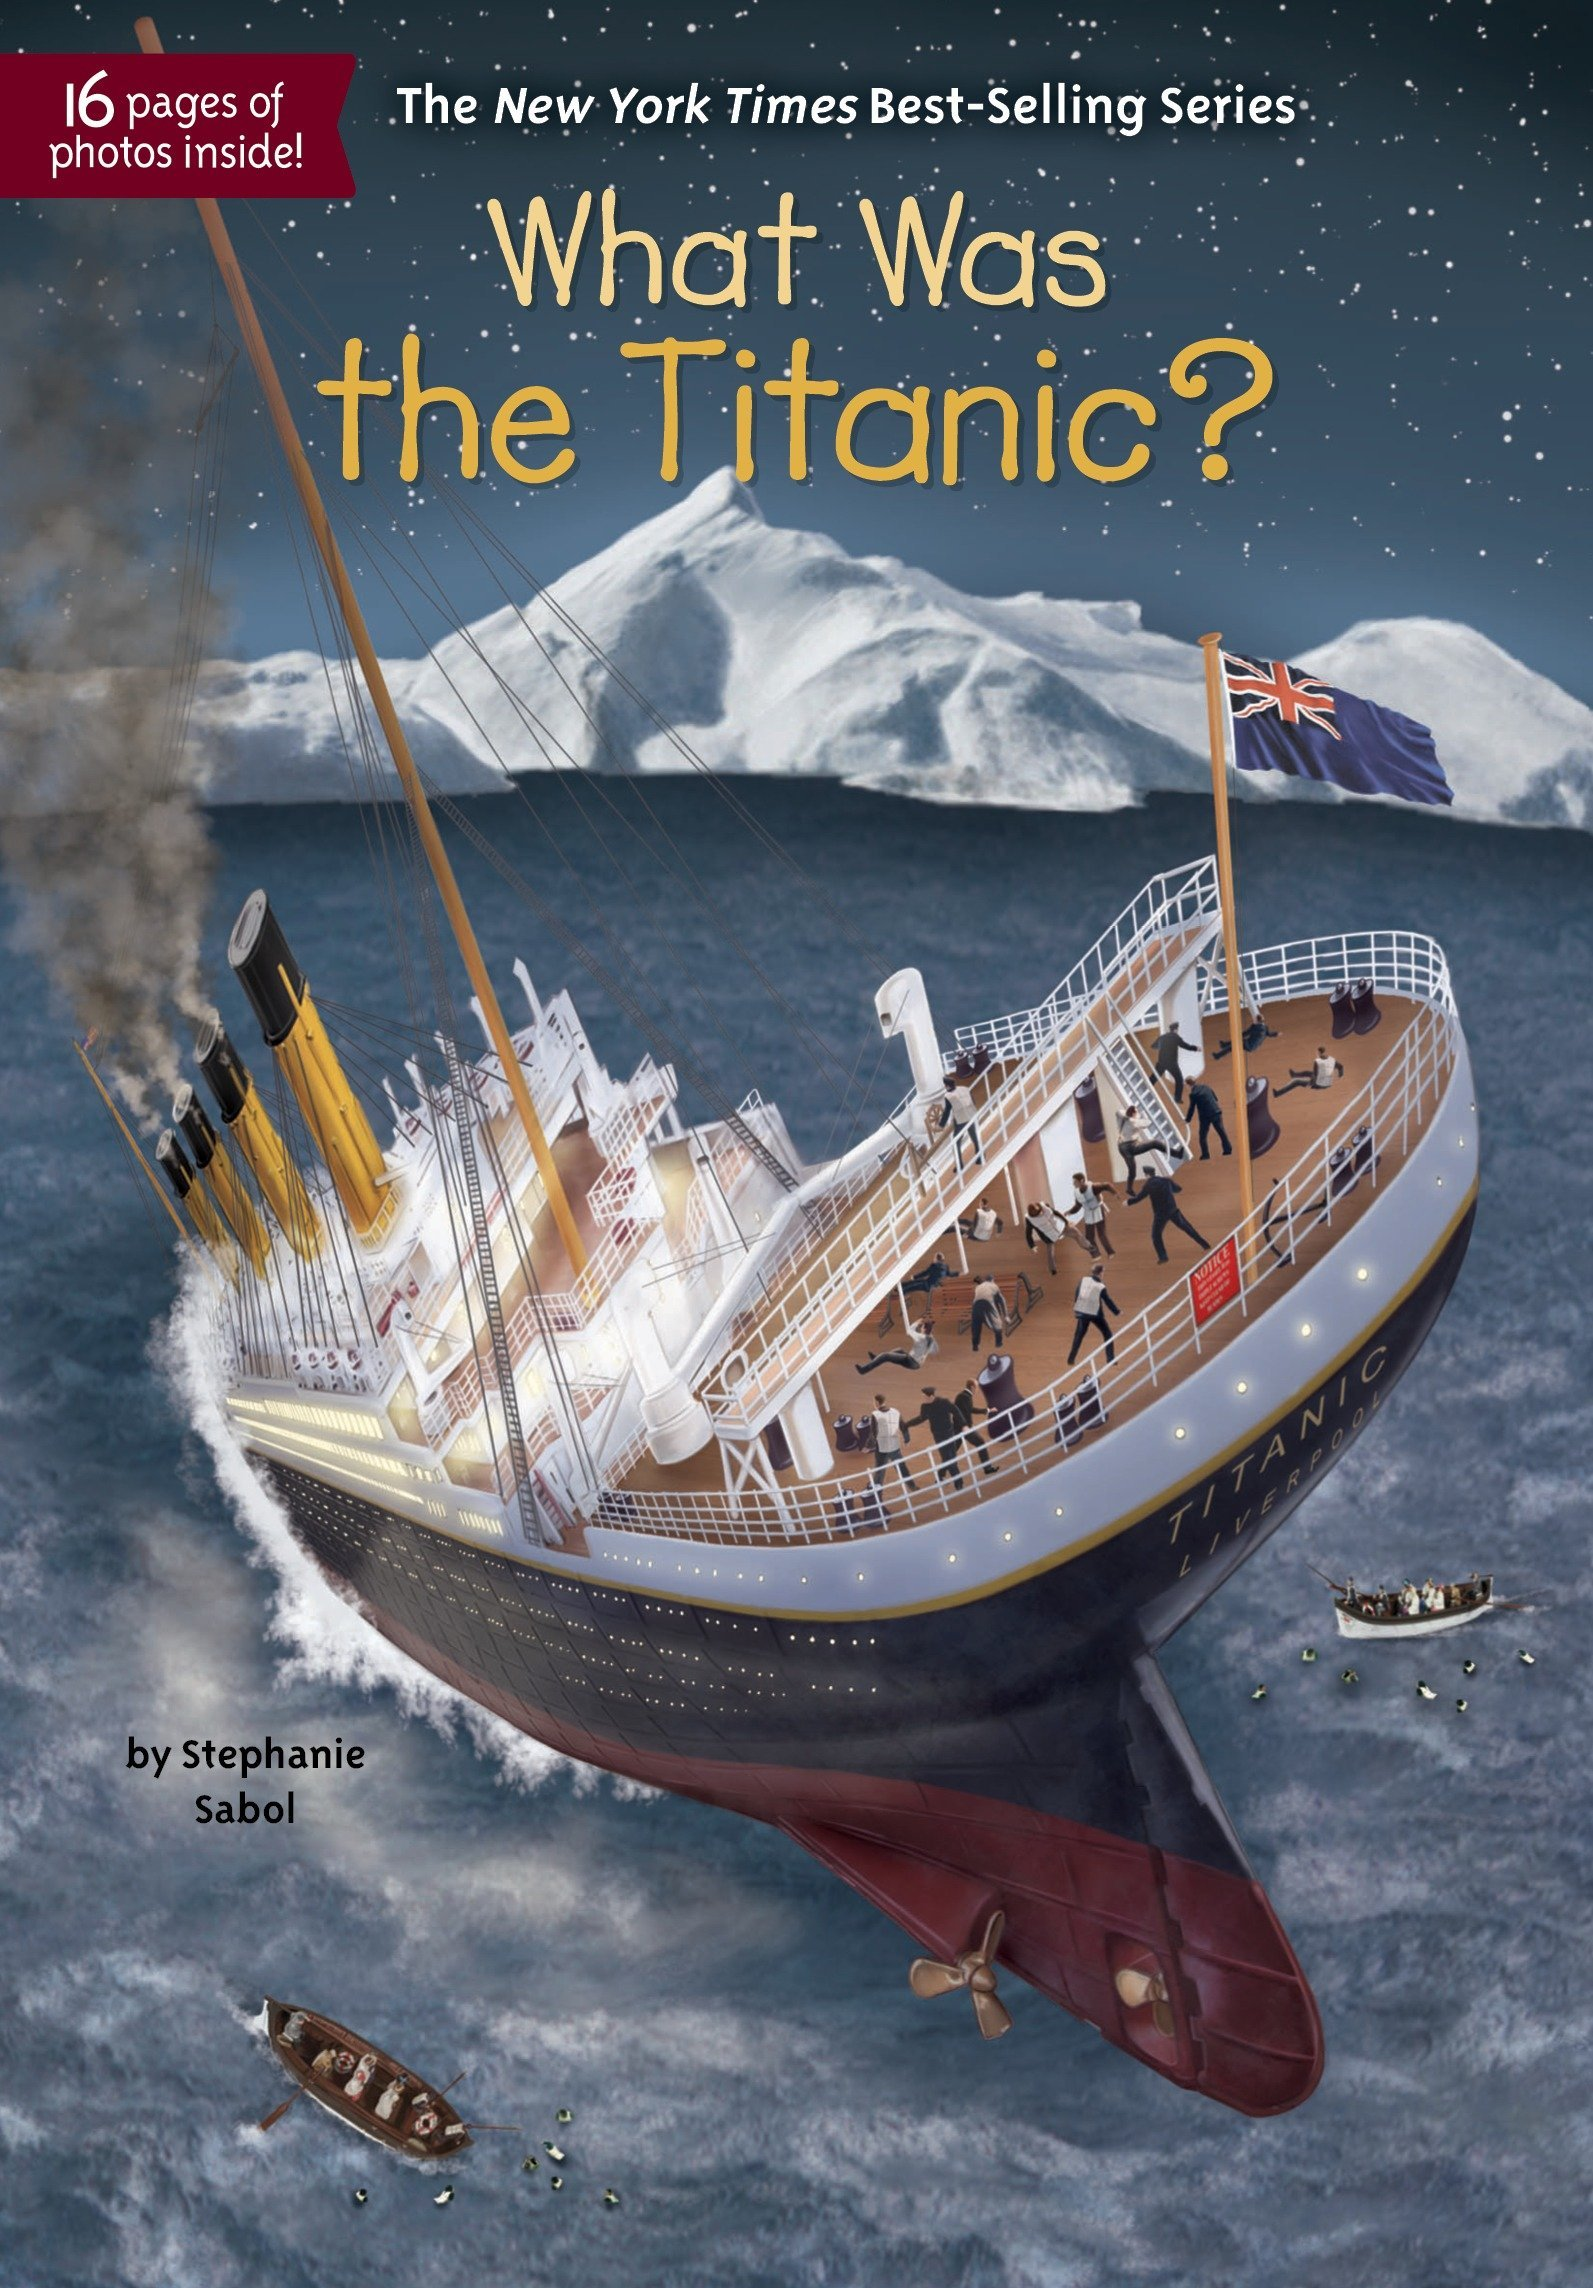 What Was the Titanic? Paperback – March 6, 2018 Stephanie Sabol Who HQ Gregory Copeland Penguin Workshop